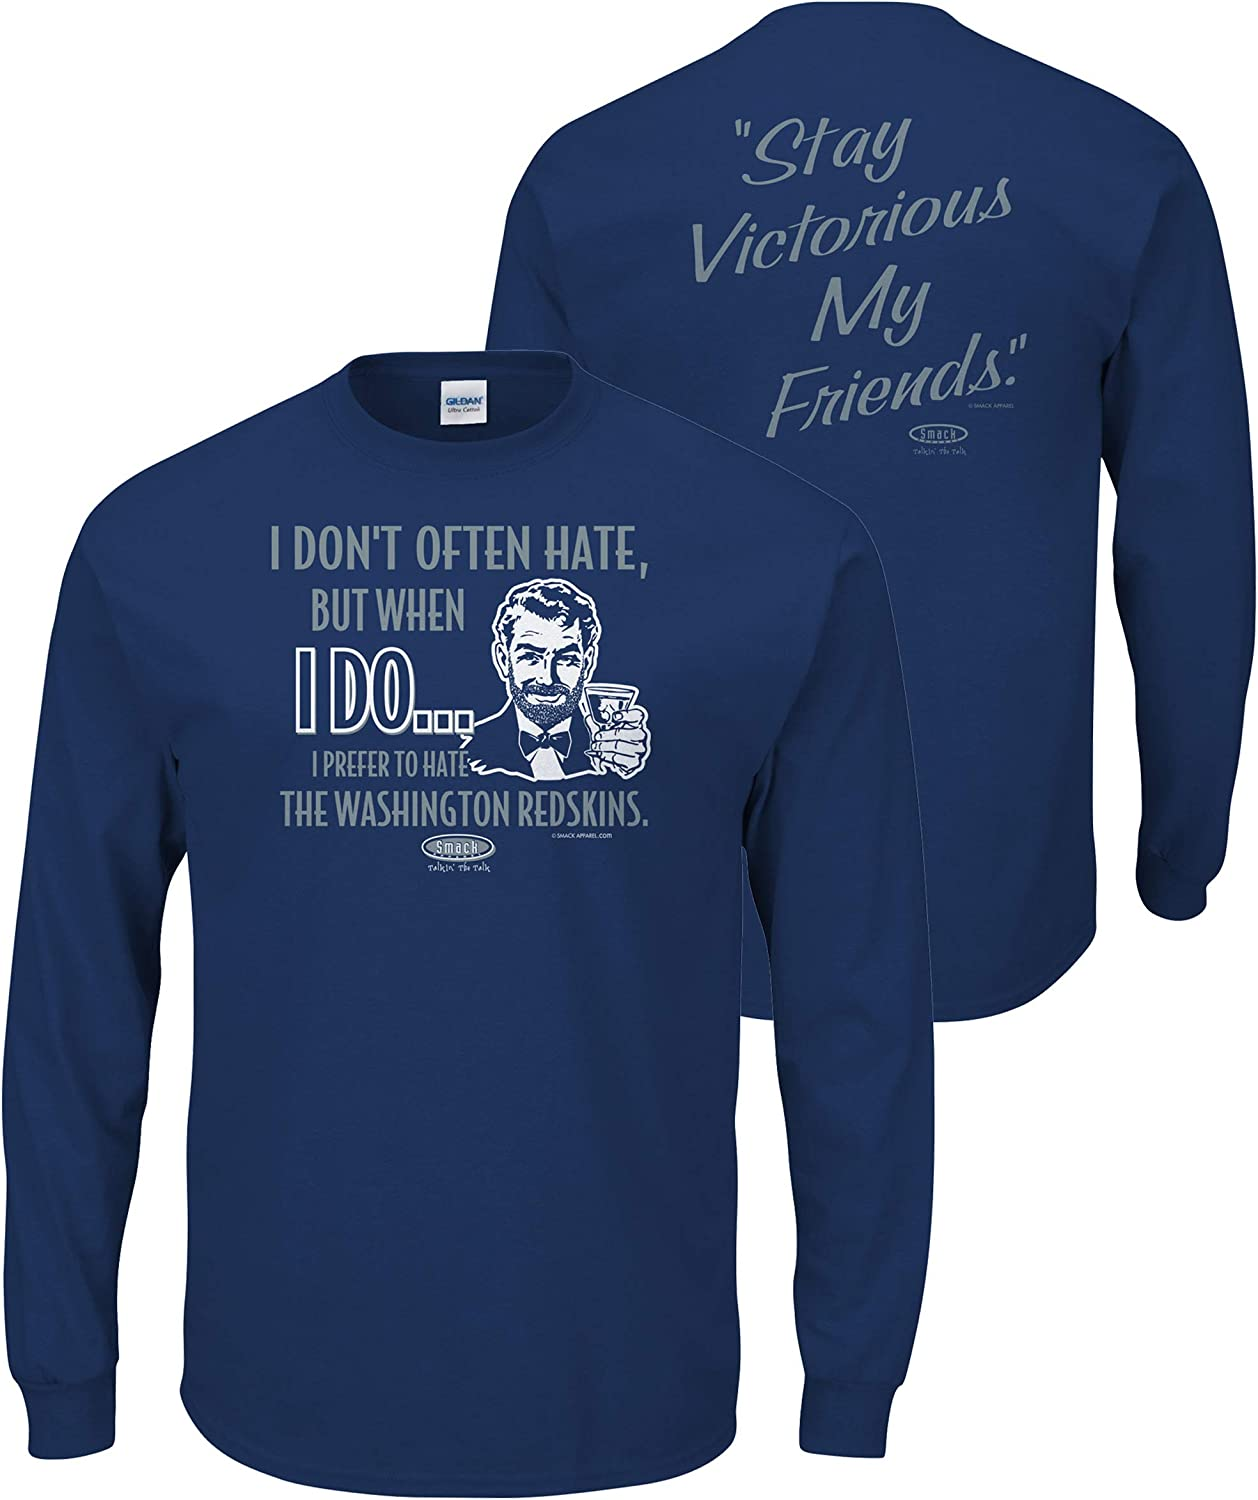 Stay Victorious Sm-5X Smack Apparel Dallas Football Fans I Prefer to Hate I Dont Often Hate But When I Do Blue T-Shirt